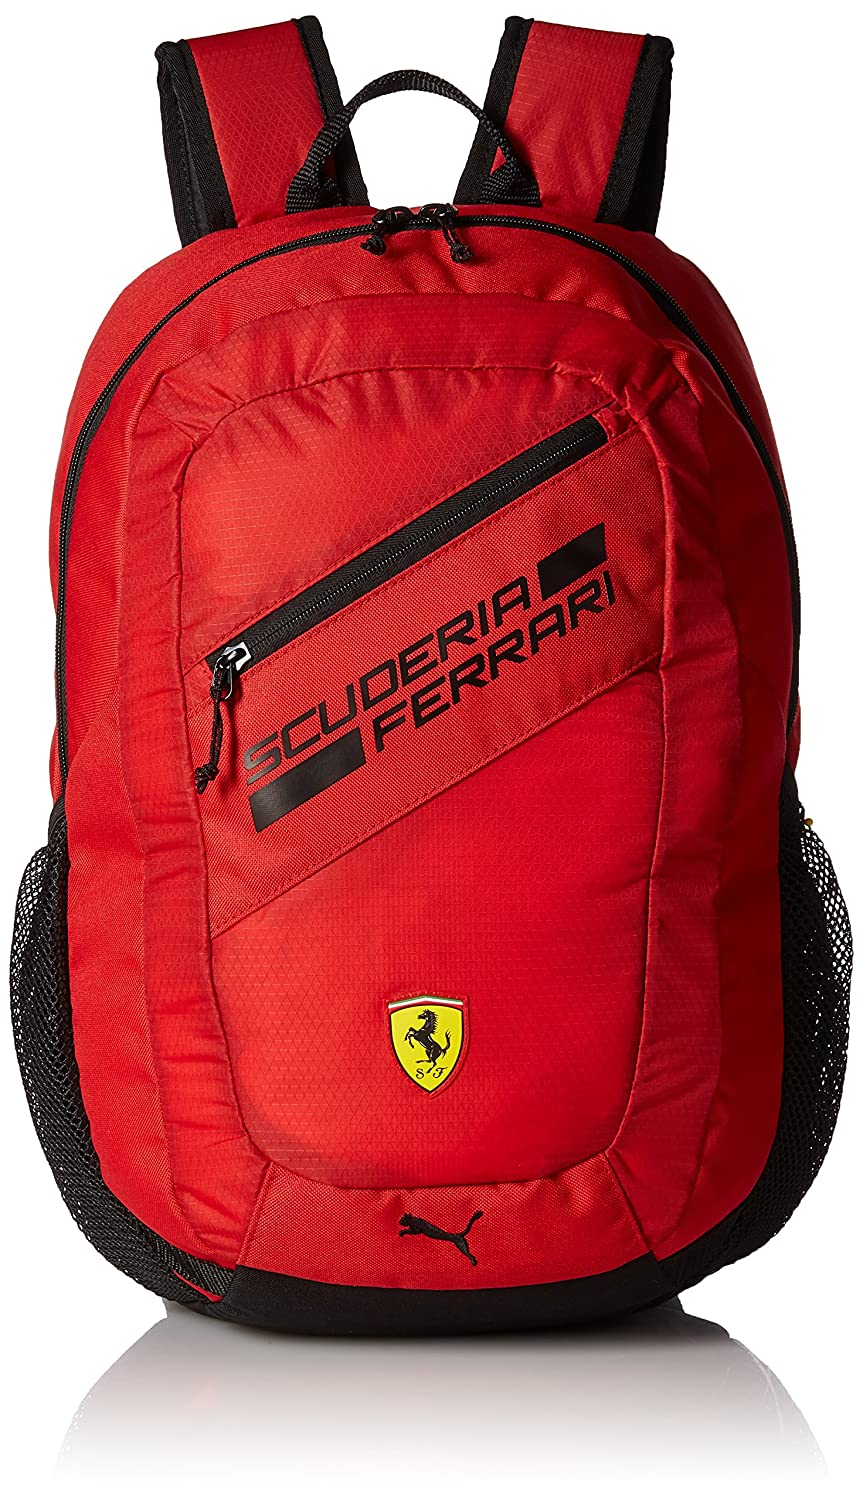 Puma Ferrari Fanwear Backpack Rucksack, Rosso Corsa Black, One size   Amazon.co.uk  Sports   Outdoors 584388718e